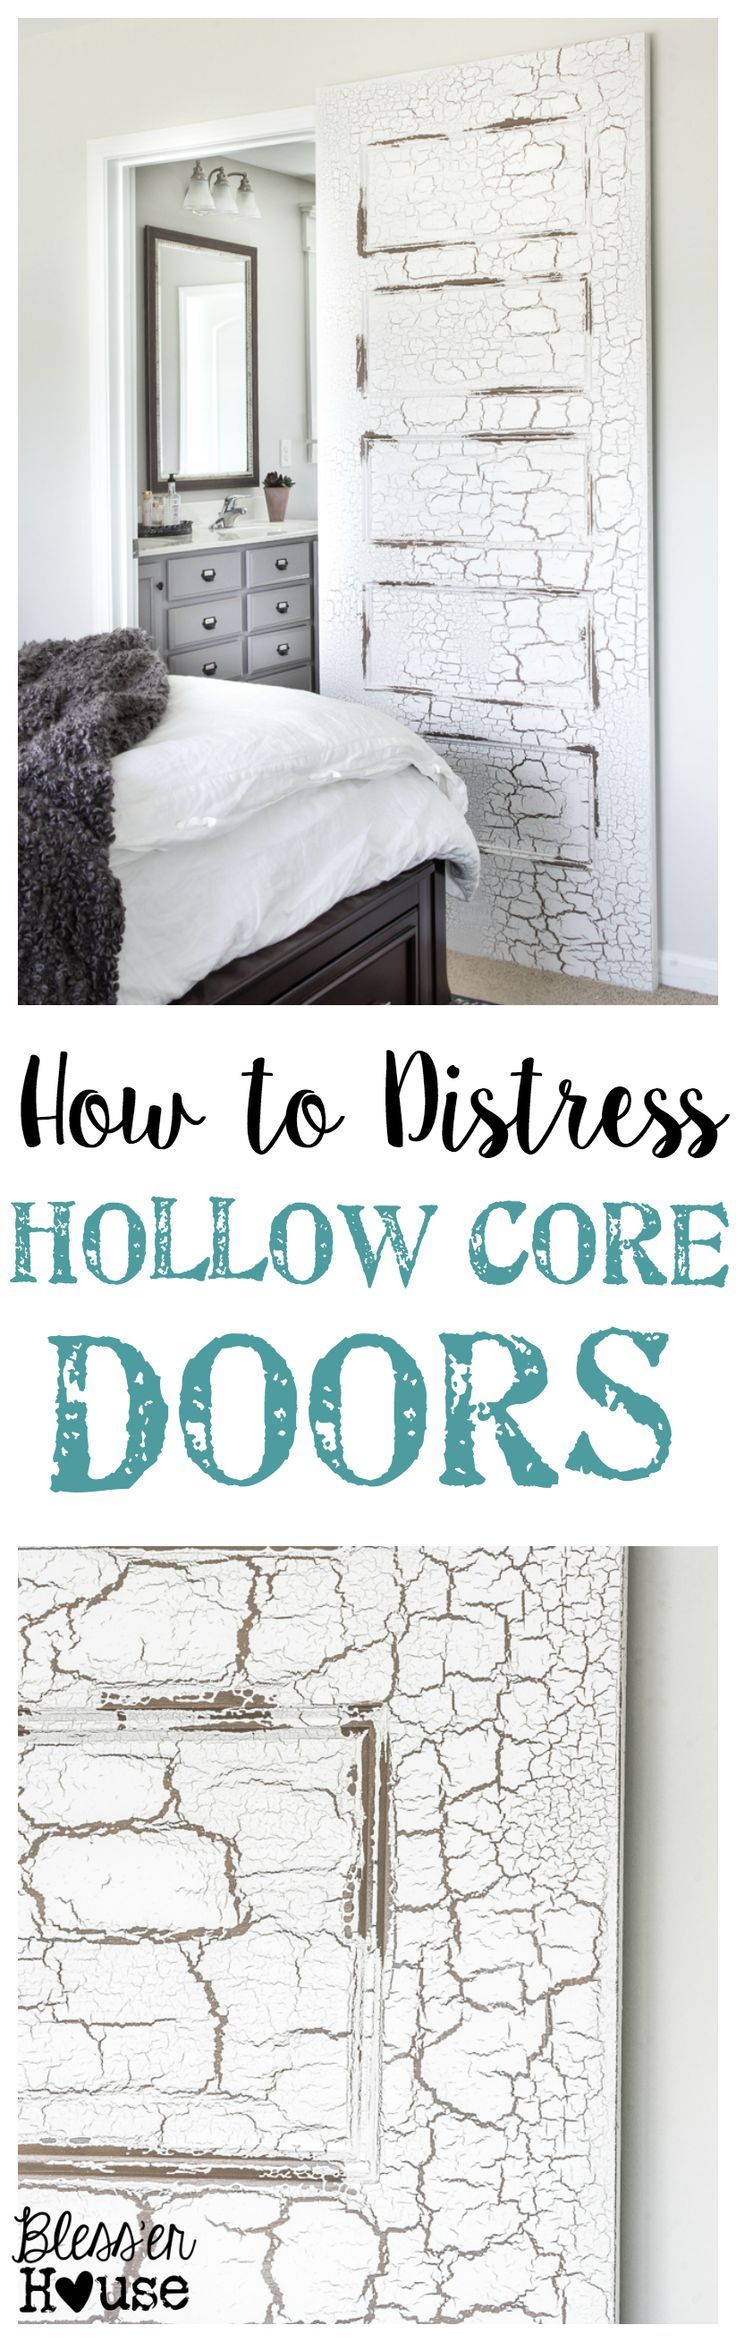 How To Distress Hollow Core Doors Doors Paint And Paint Finishes